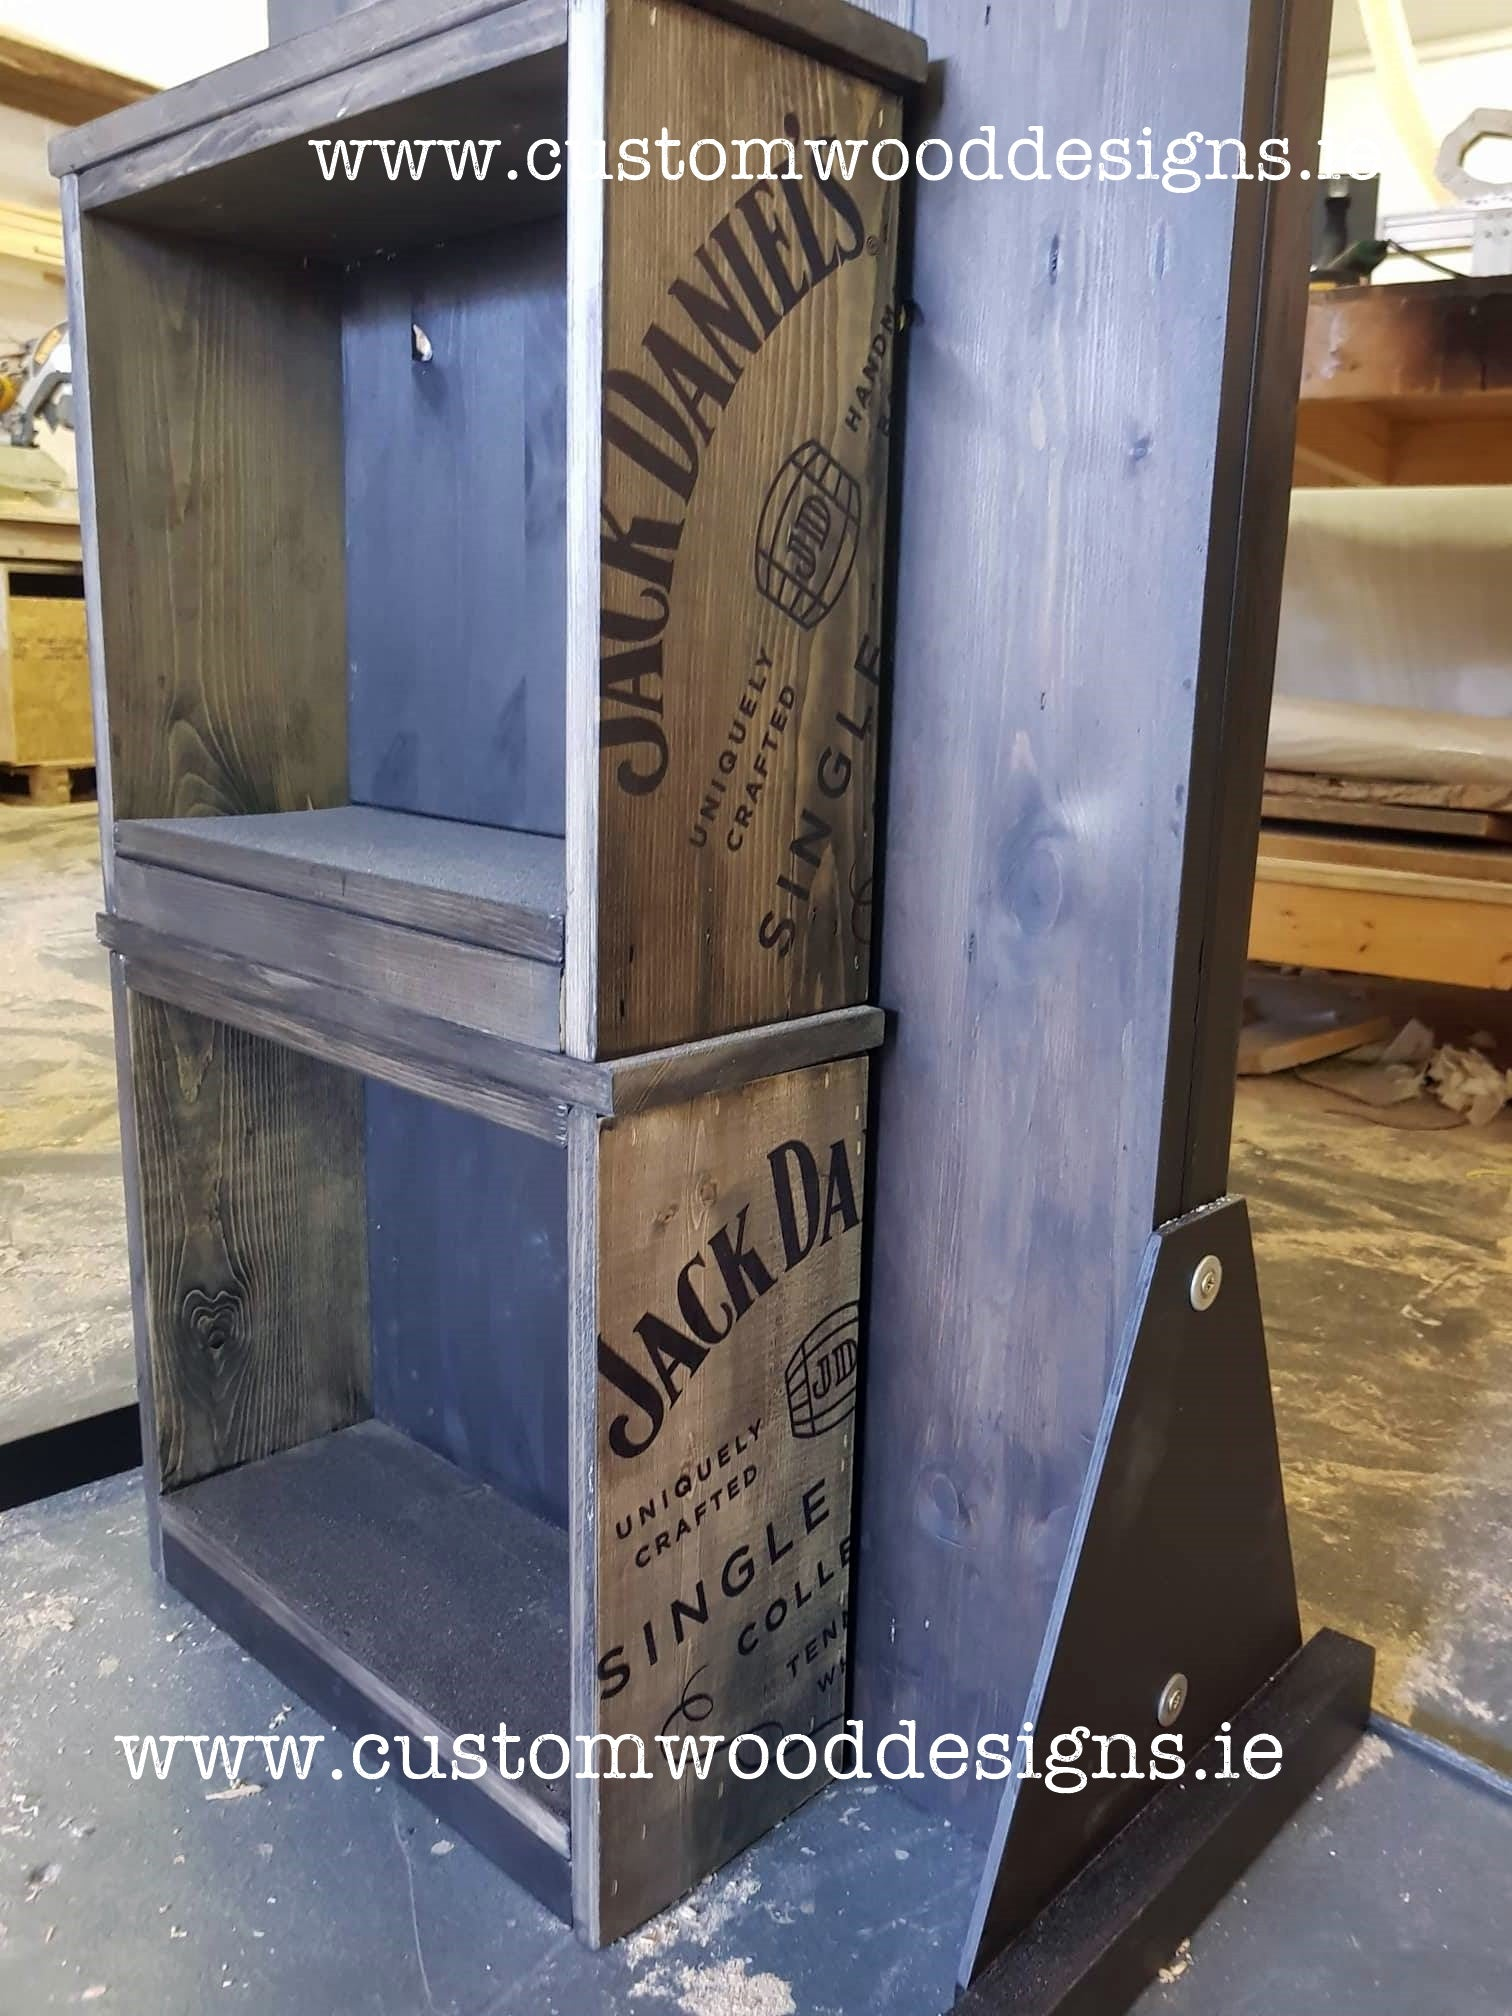 crates black rustic wioth lighjts jack daniels point of sale retail display point of sale free standing europenan manufacturer custom wood designs Ireland Irish designs manufacture